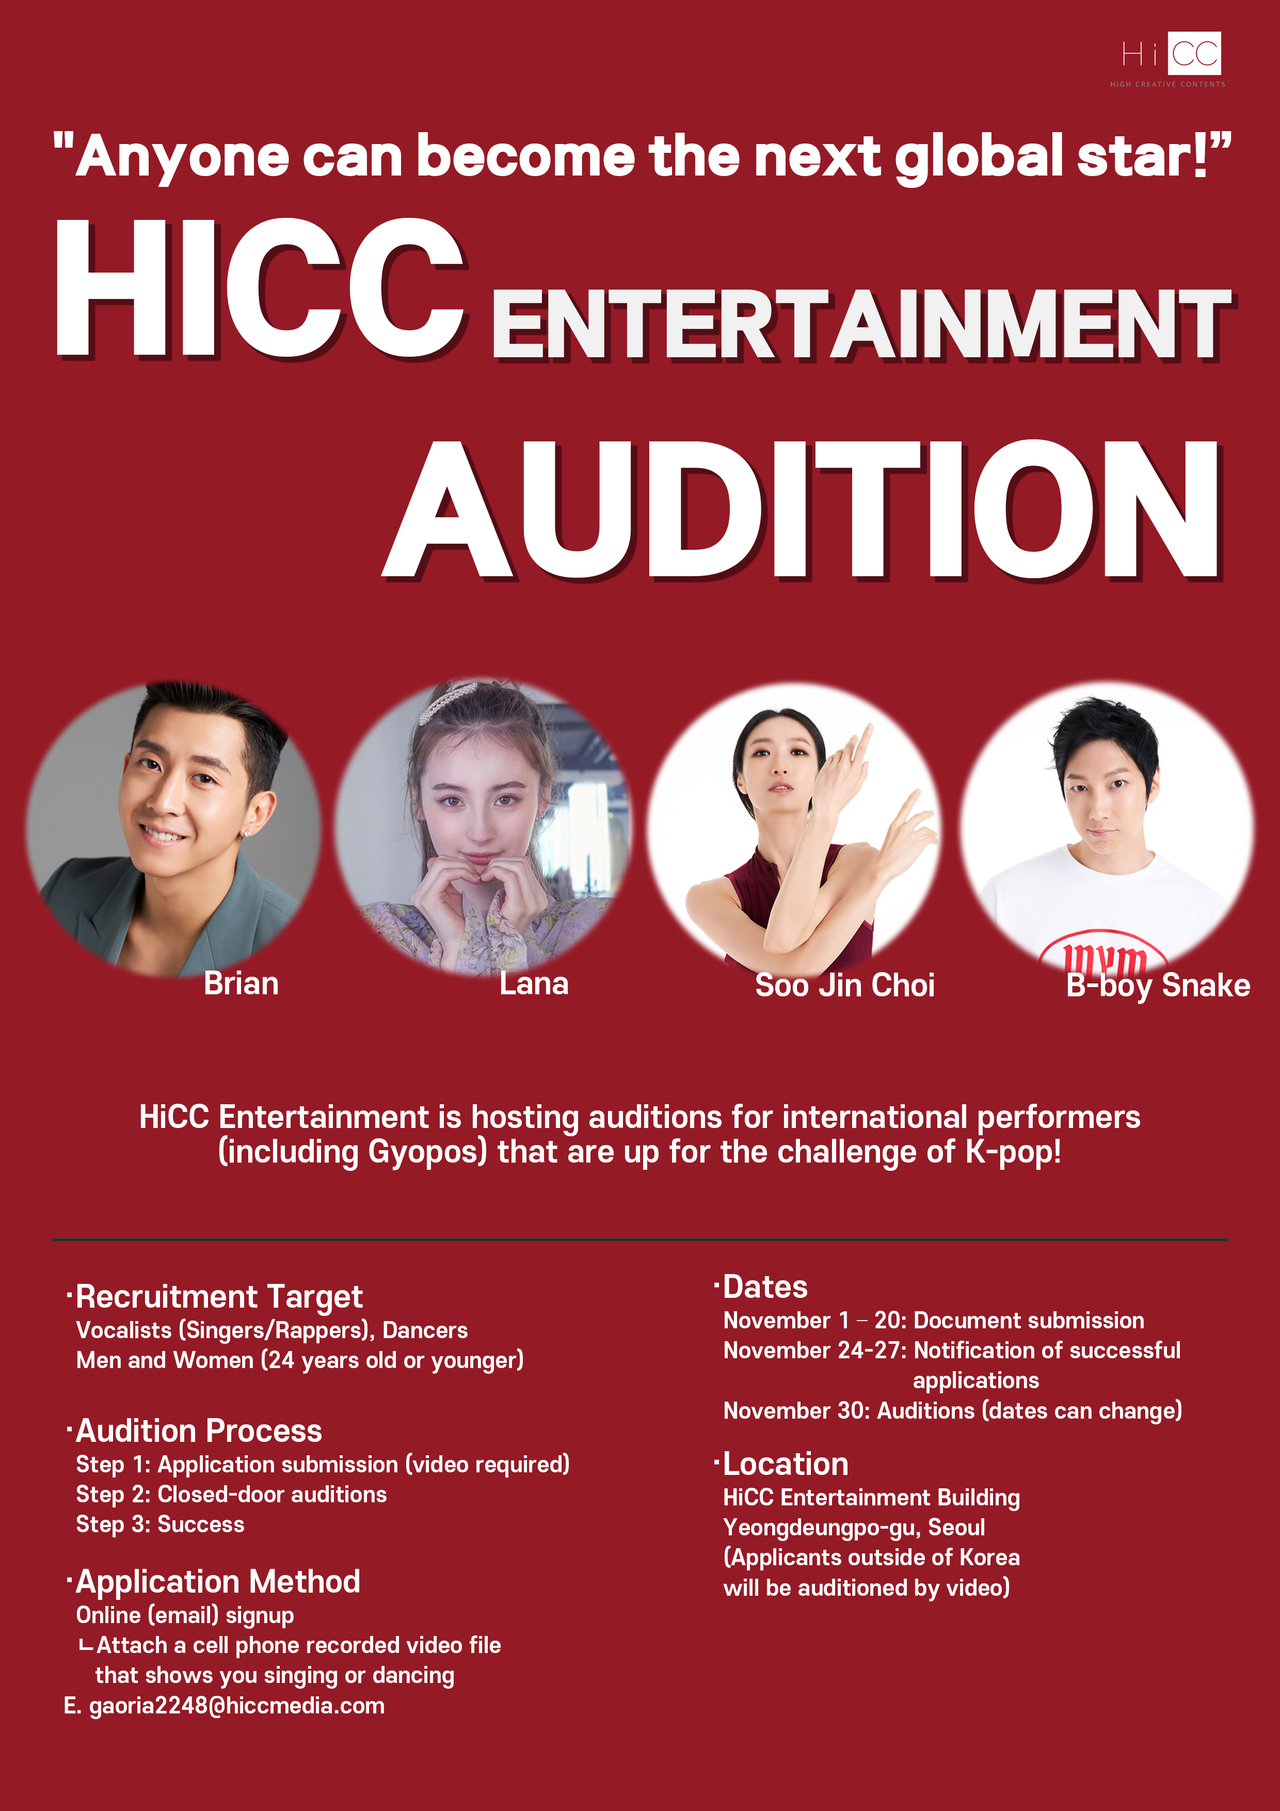 Audition Hicc Entertainment Audition Starts This November Kpopmap Kpop Kdrama And Trend Stories Coverage